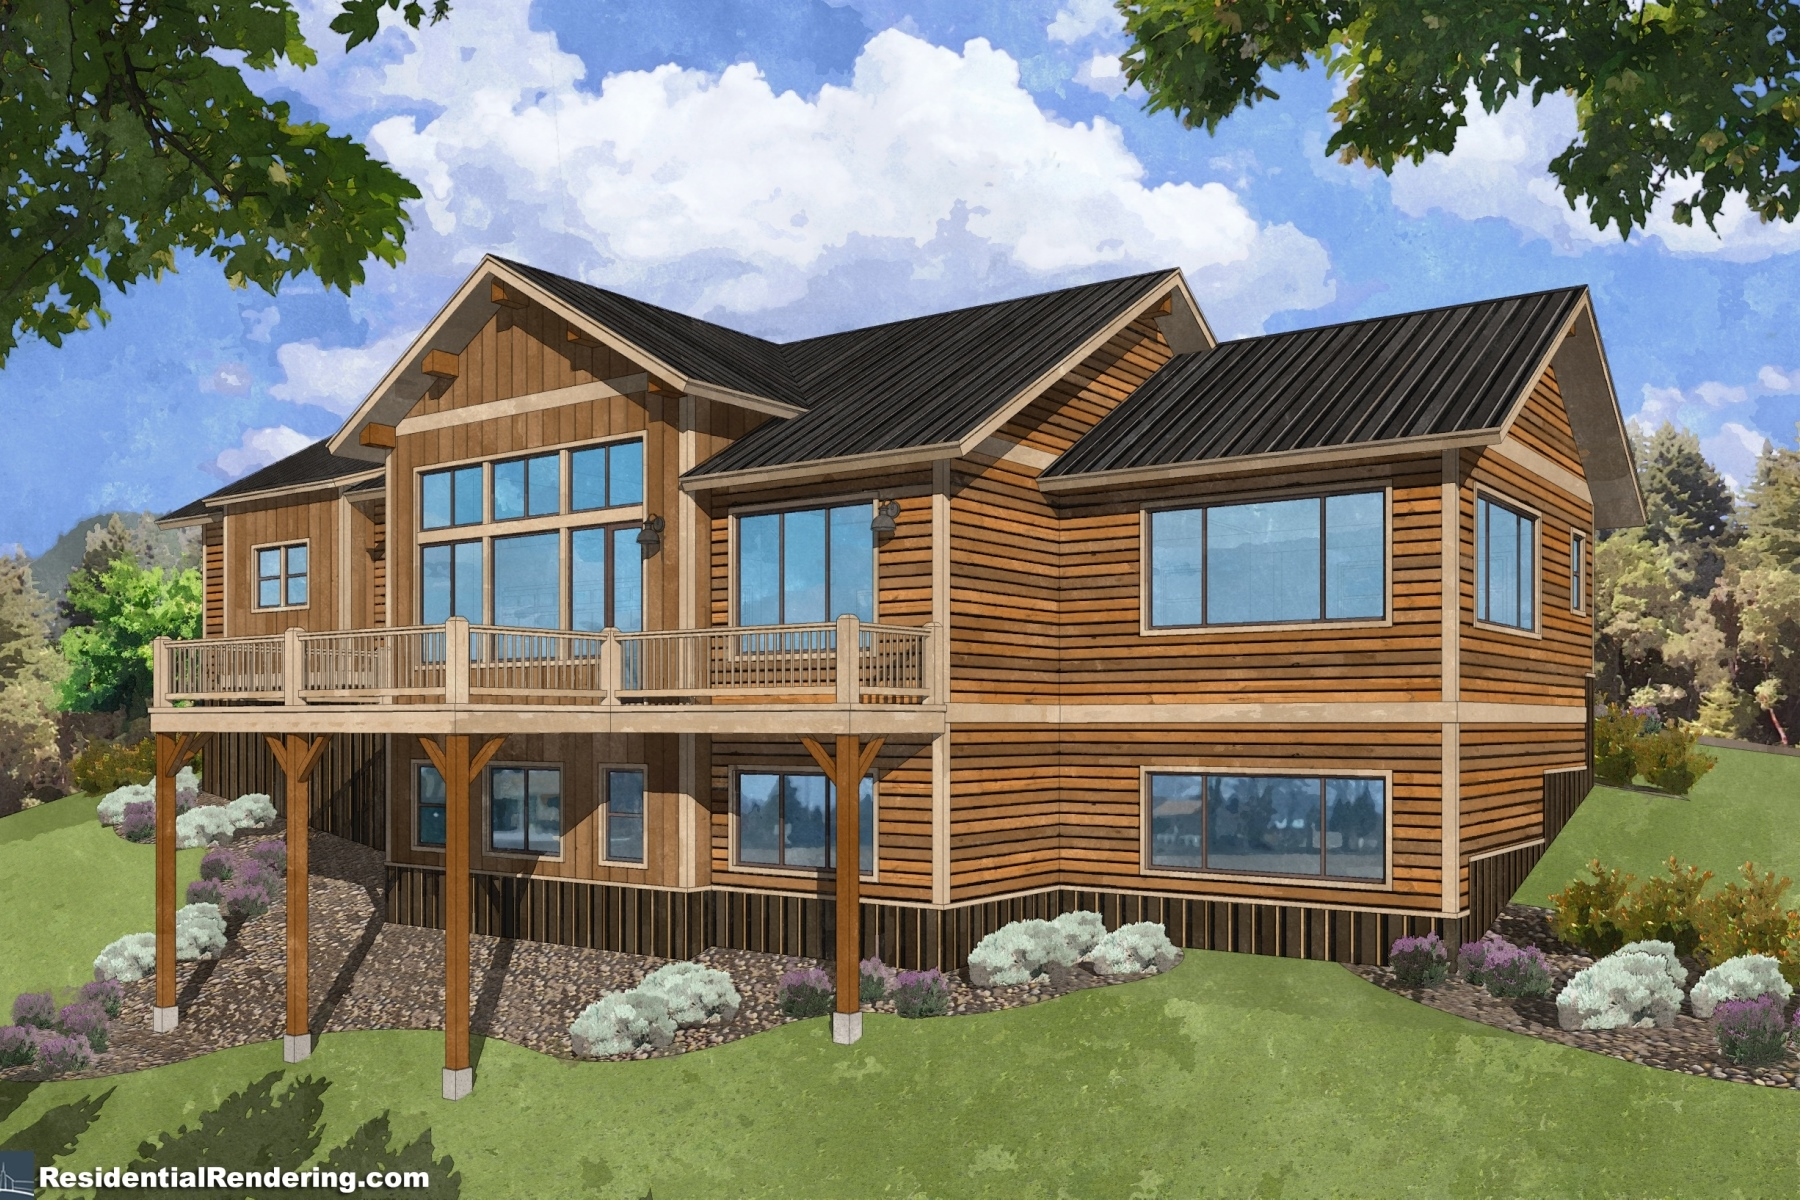 Casa Unifamiliar por un Venta en Ski-in/Ski-out New Construction 7 Silver Lane Mount Crested Butte, Colorado, 81225 Estados Unidos